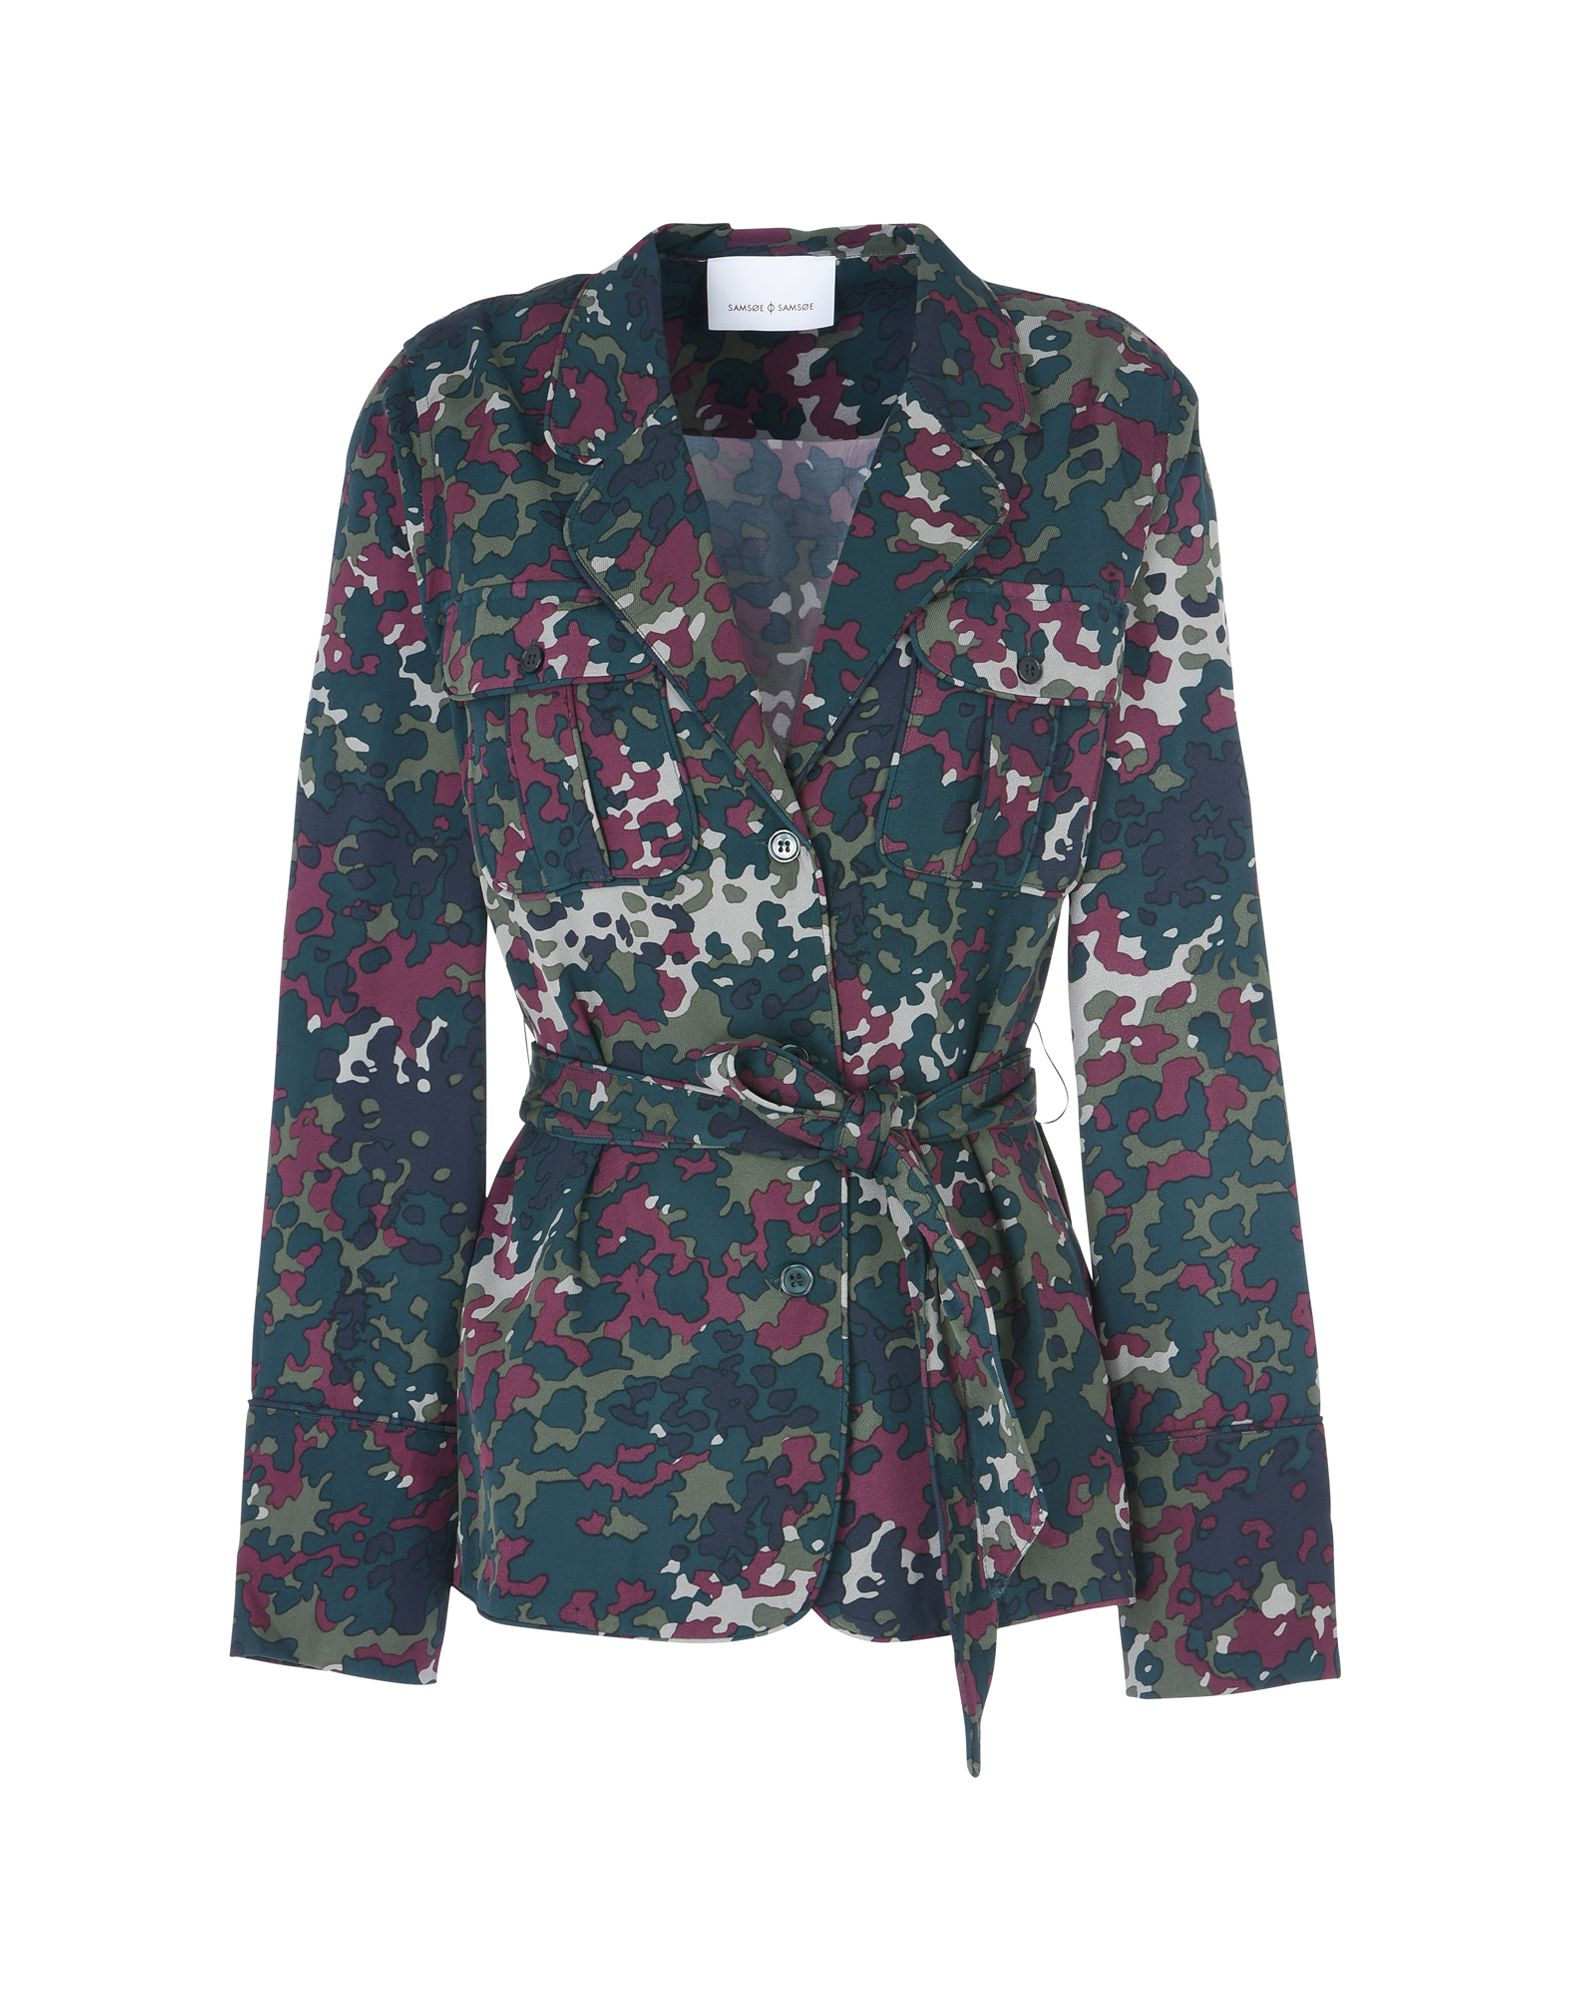 Women Camouflage Clothing online Spring-Summer and Fall-Winter Collections  - Shop on YOOX